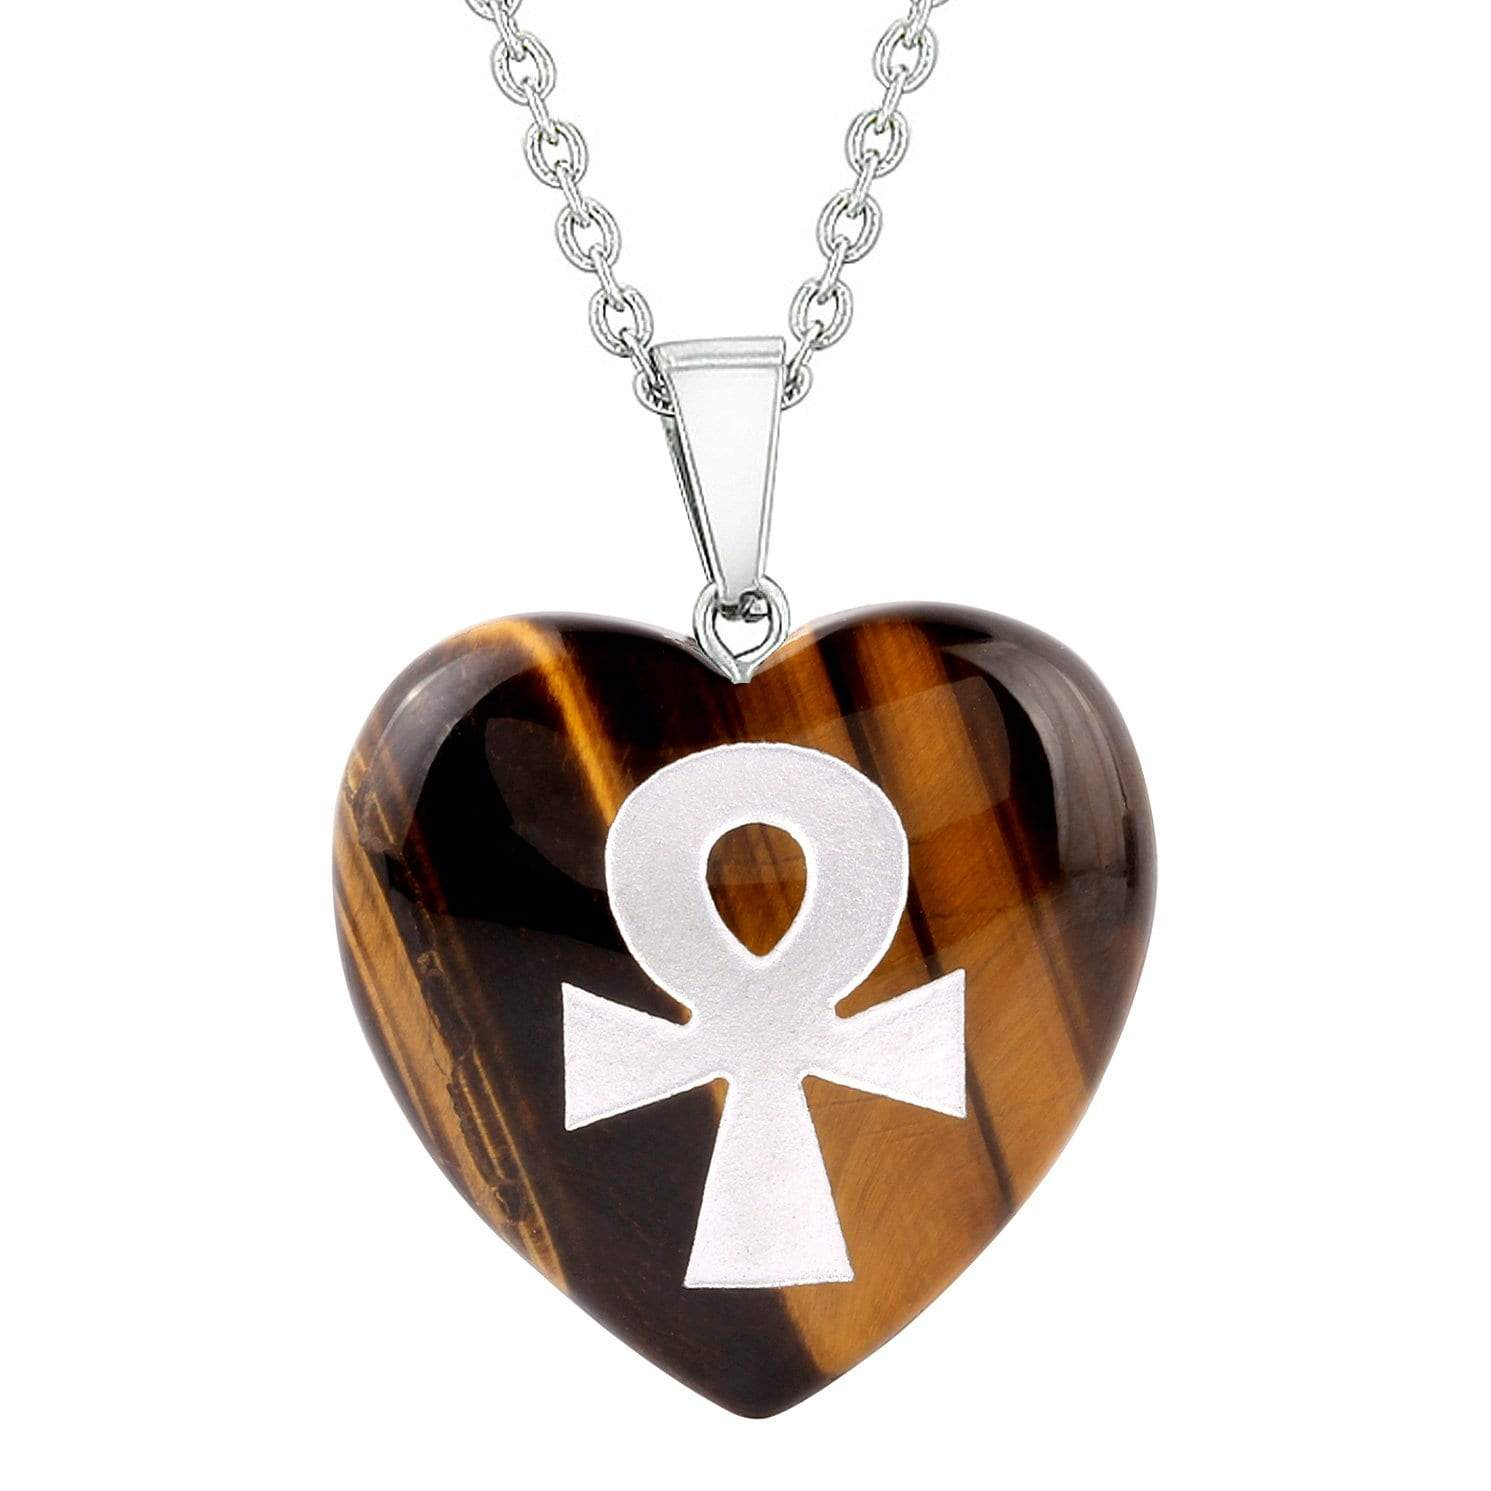 Amulet Ankh Egyptian Powers of Life Protection Energy Tiger Eye Puffy Heart Pendant Necklace